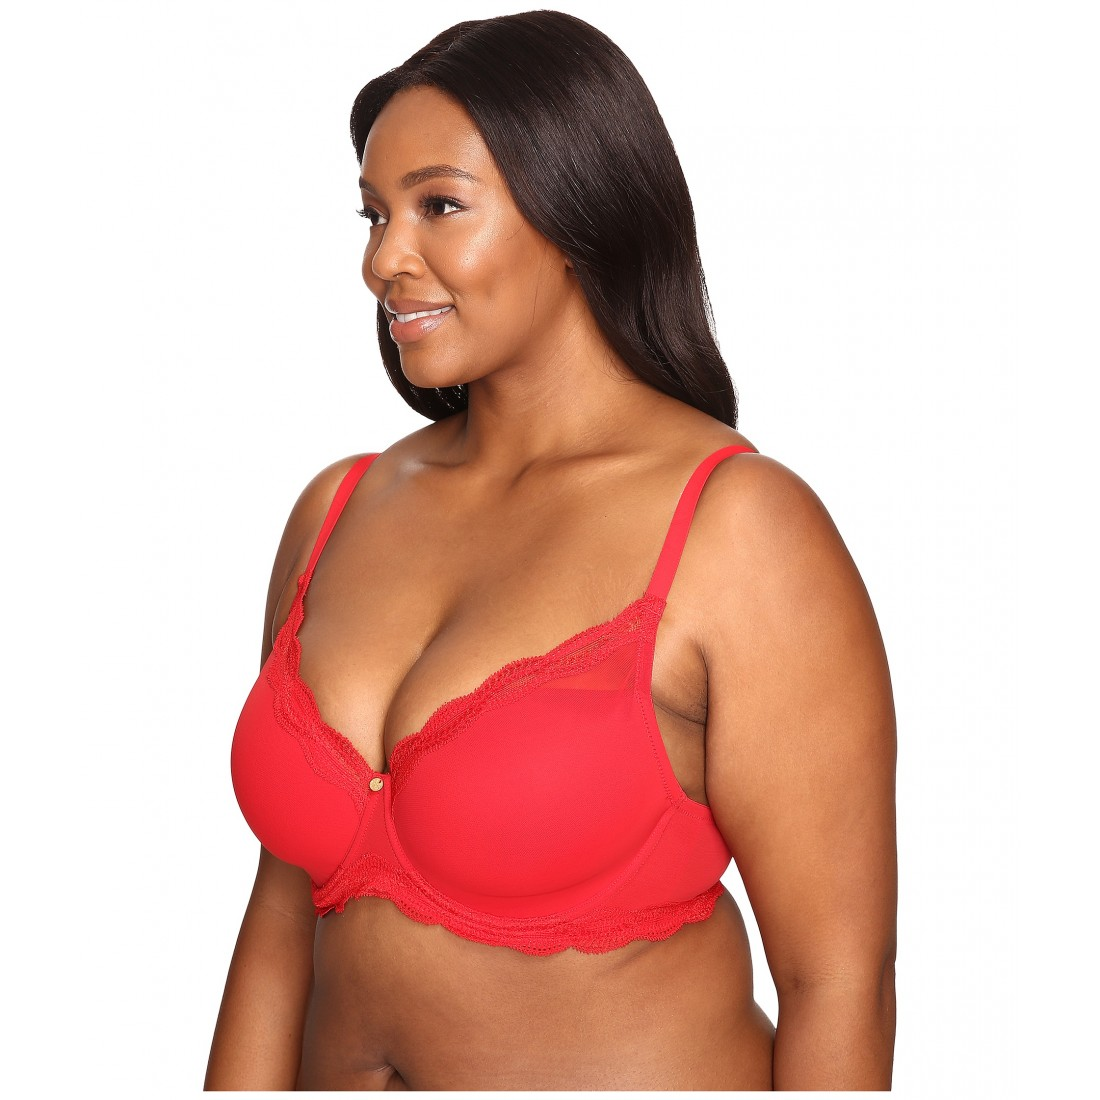 eab98ac3b Natori Pure Allure Full Figure Contour Underwire Bra 736099 ZPSKU 8535323  Real Red